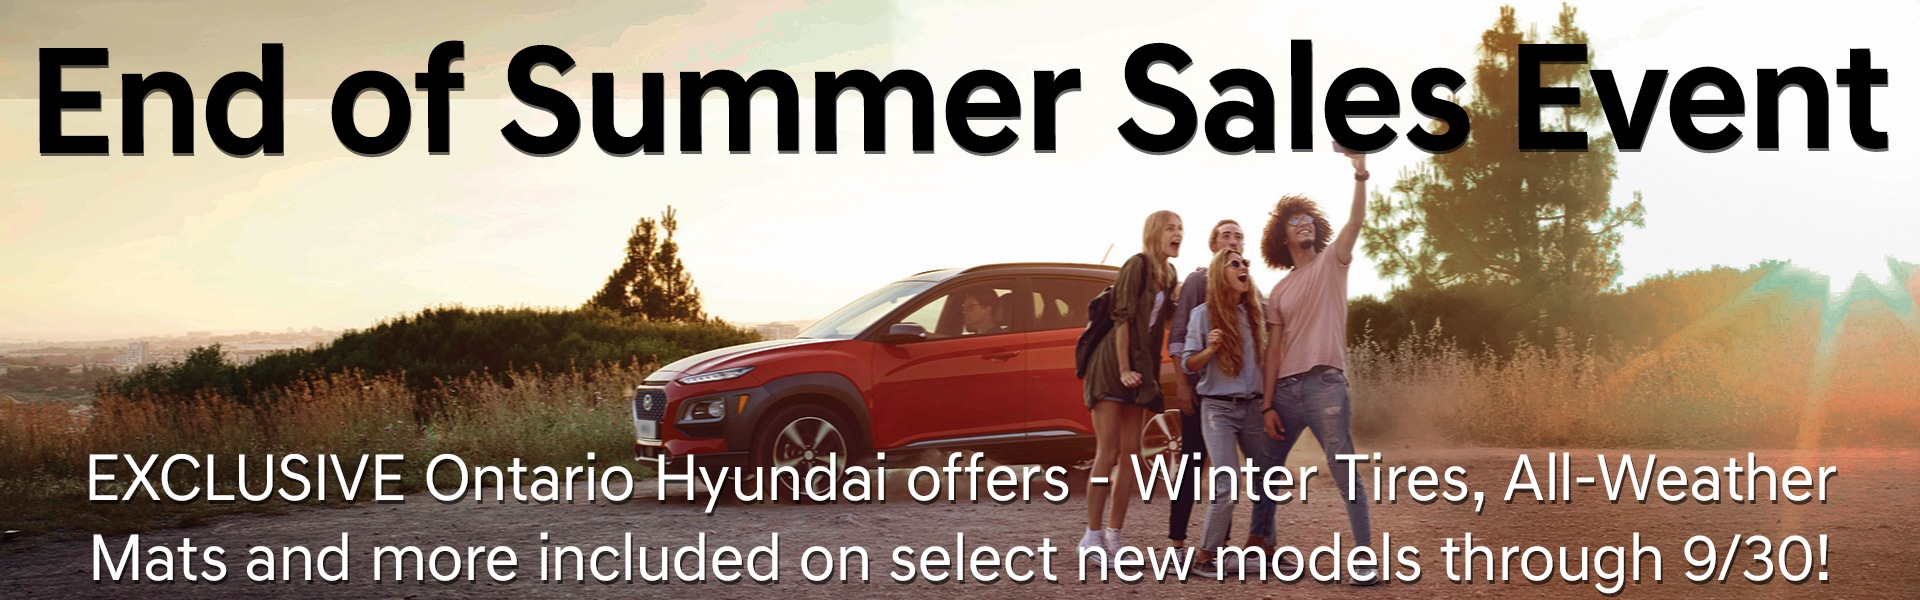 End of Summer Sales Event